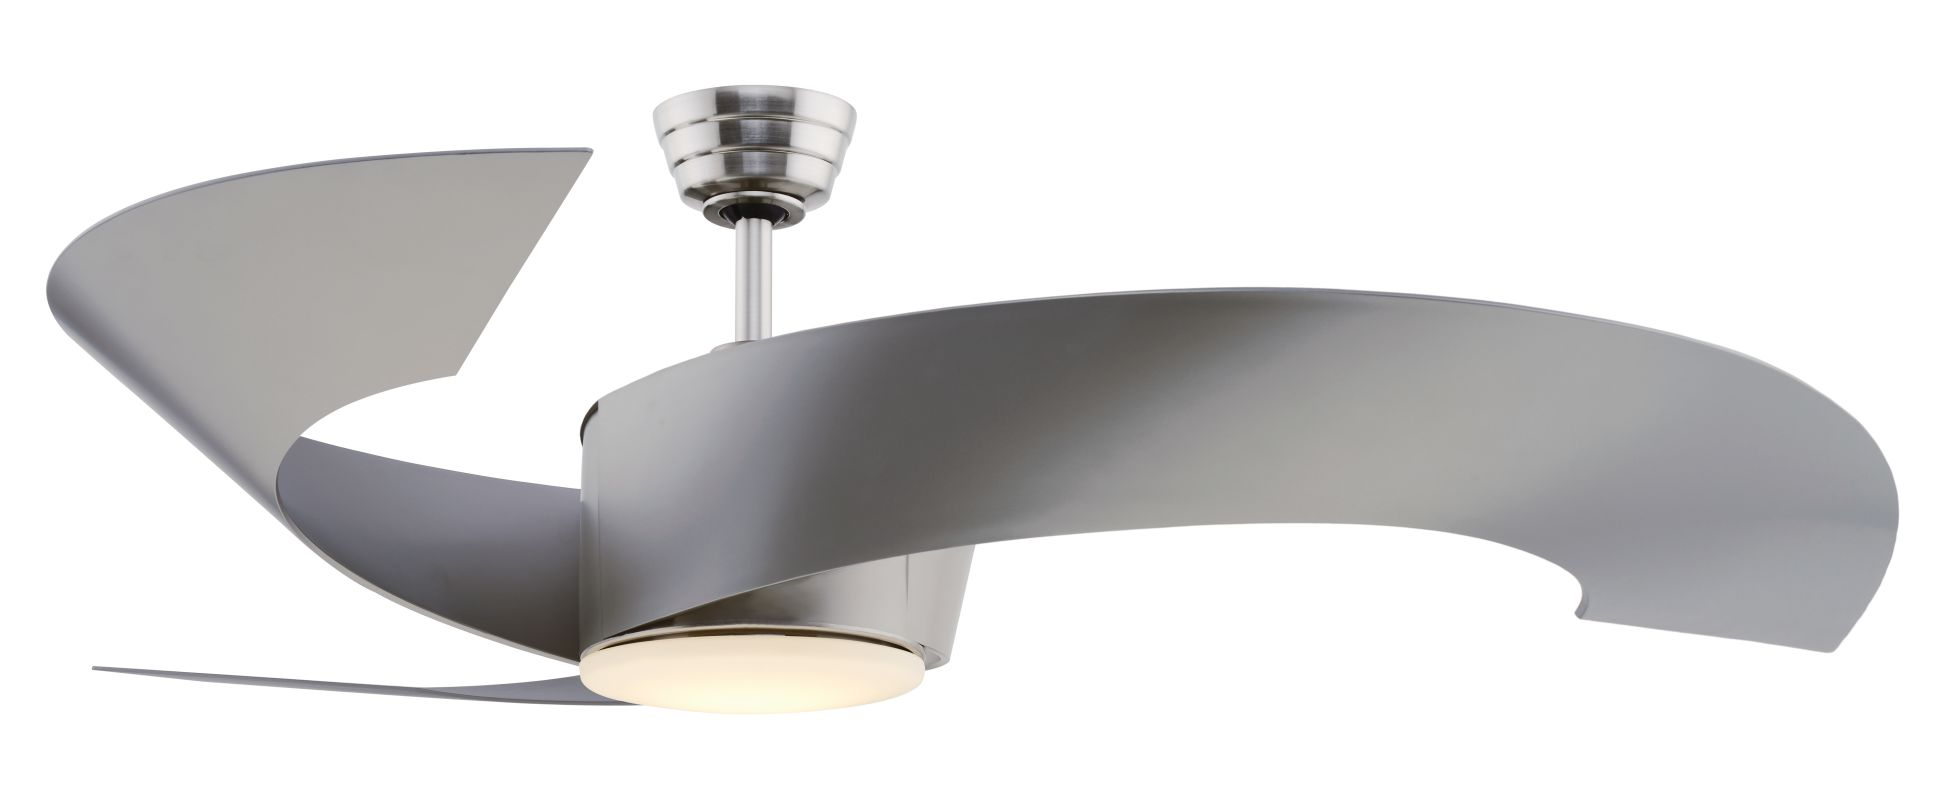 "Fanimation FP7902 52"" Semi-Flush 3 Blade Energy Star Certified Ceiling"